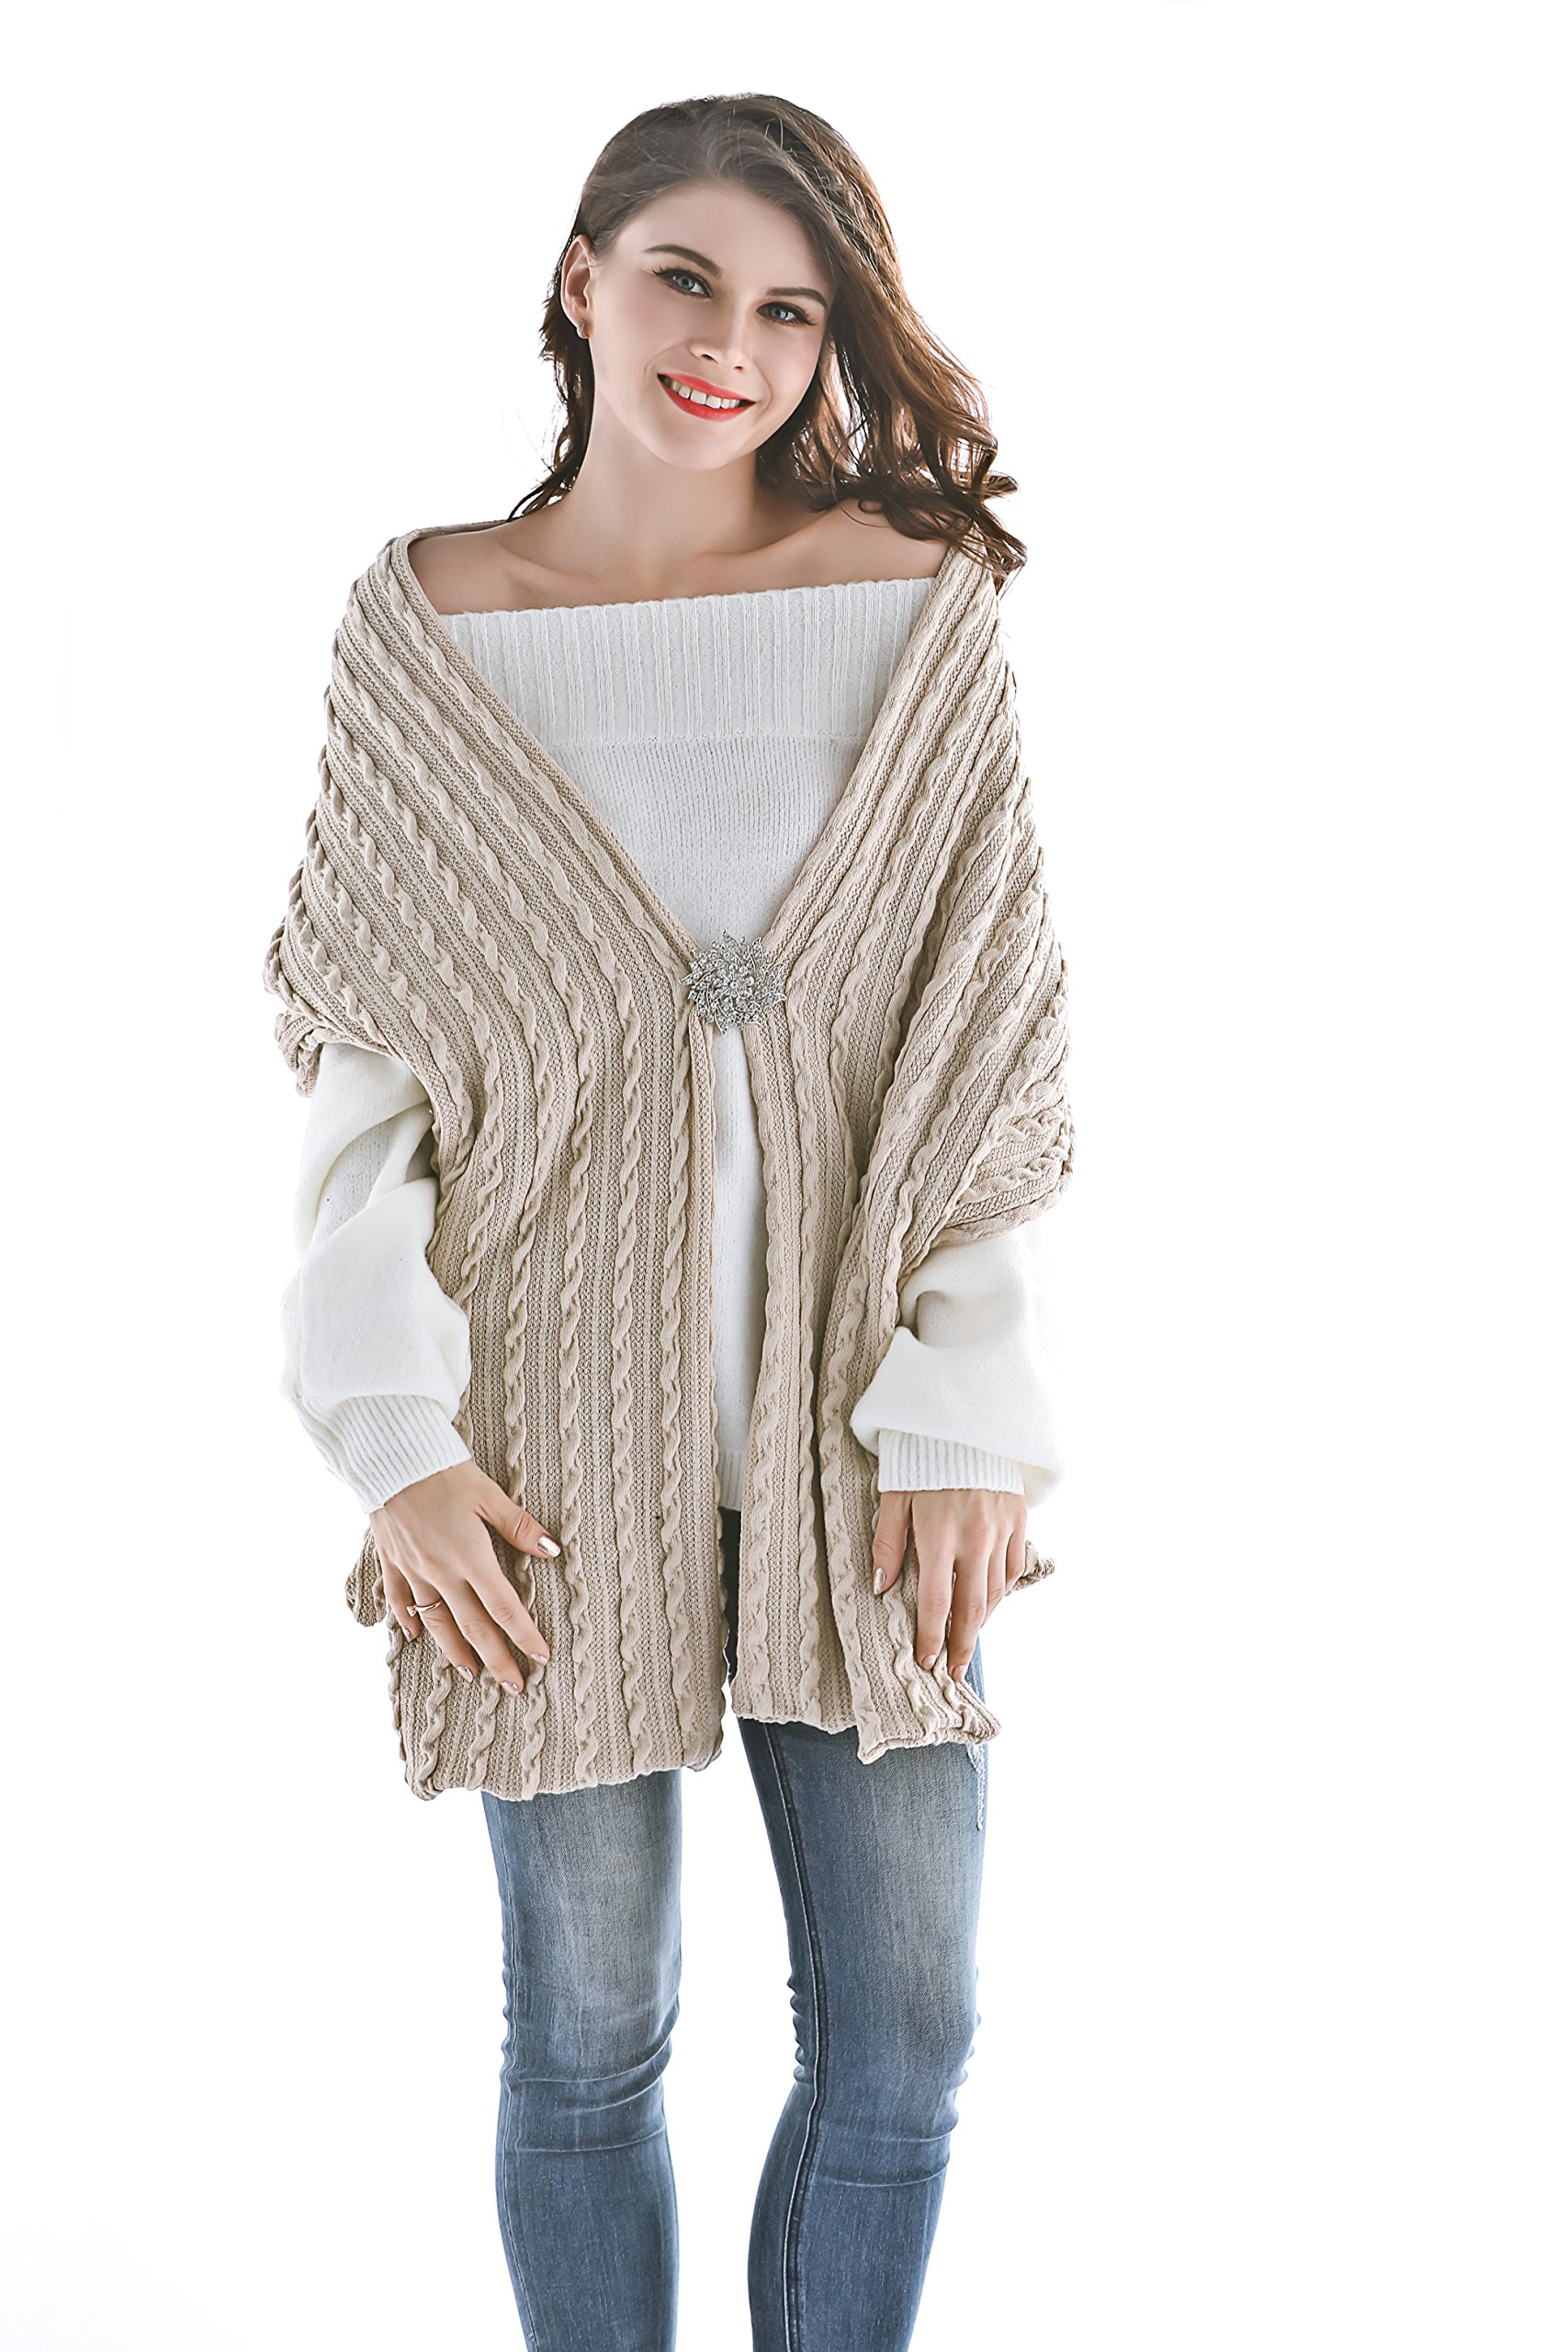 Aukmla Women Knitted Scarf Winter Shawls Wraps Long Pashminas Poncho with Brooch (Beige)